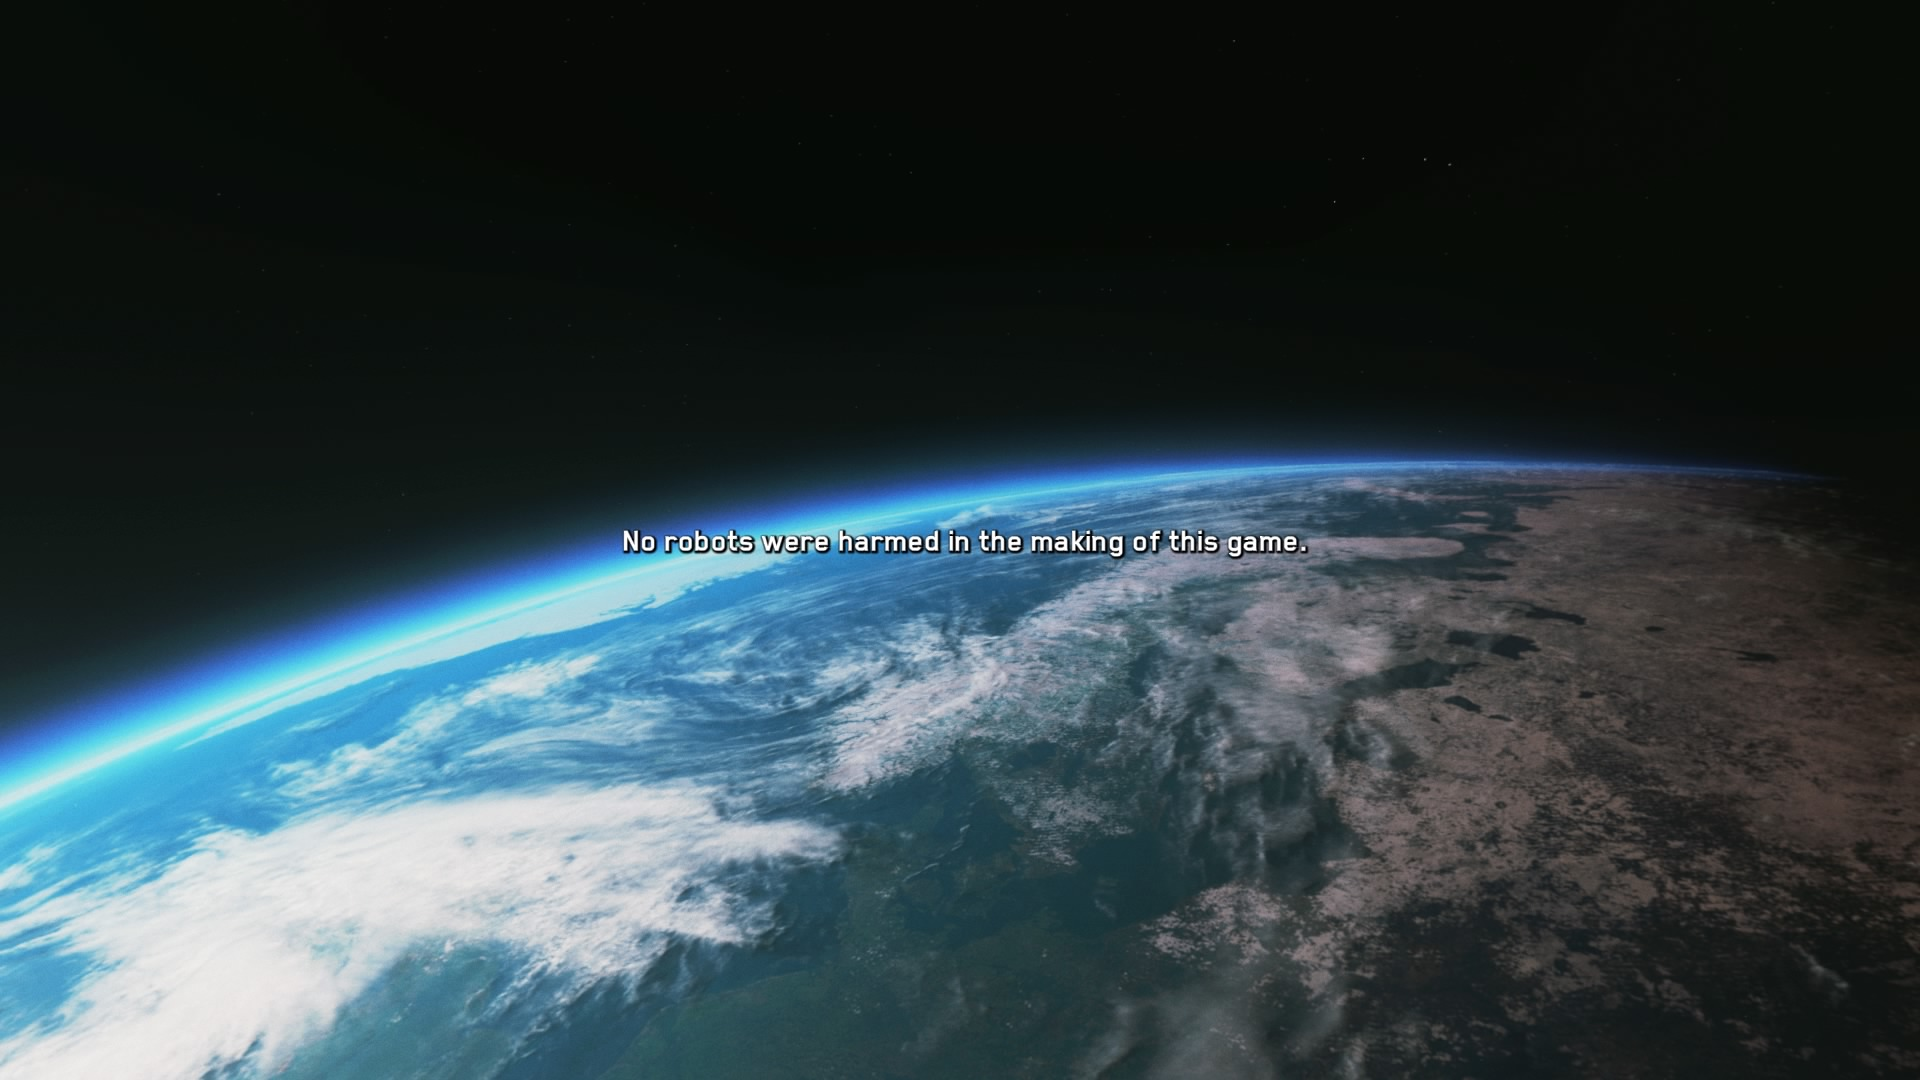 End Credits screen from Call of Duty: Infinite Warfare